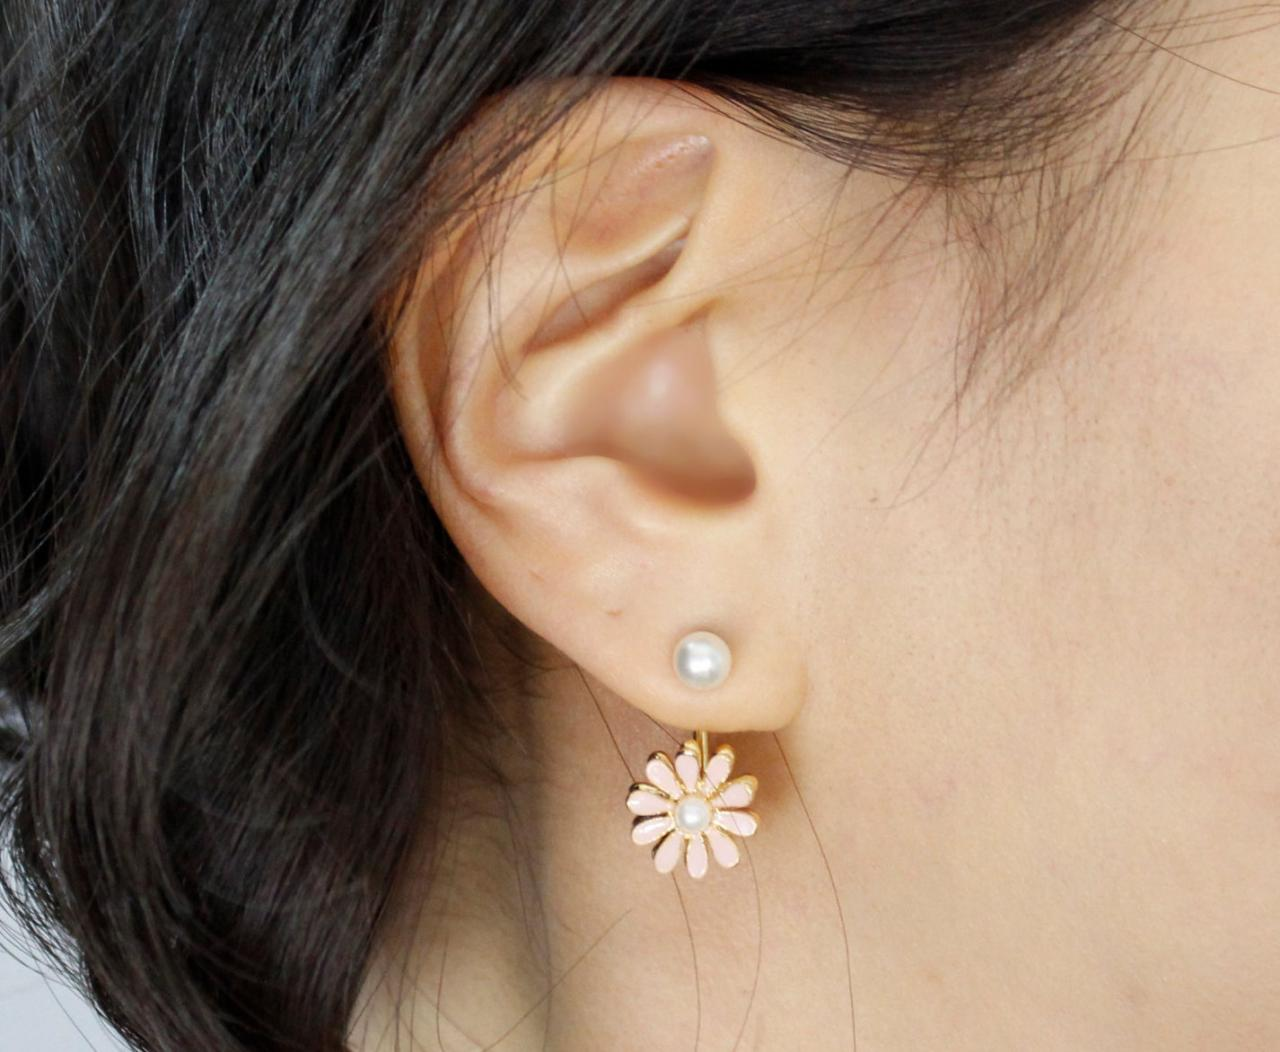 Front Back Daisy flower Earrings, wrap around cuff earrings in 2 colors, E0463S